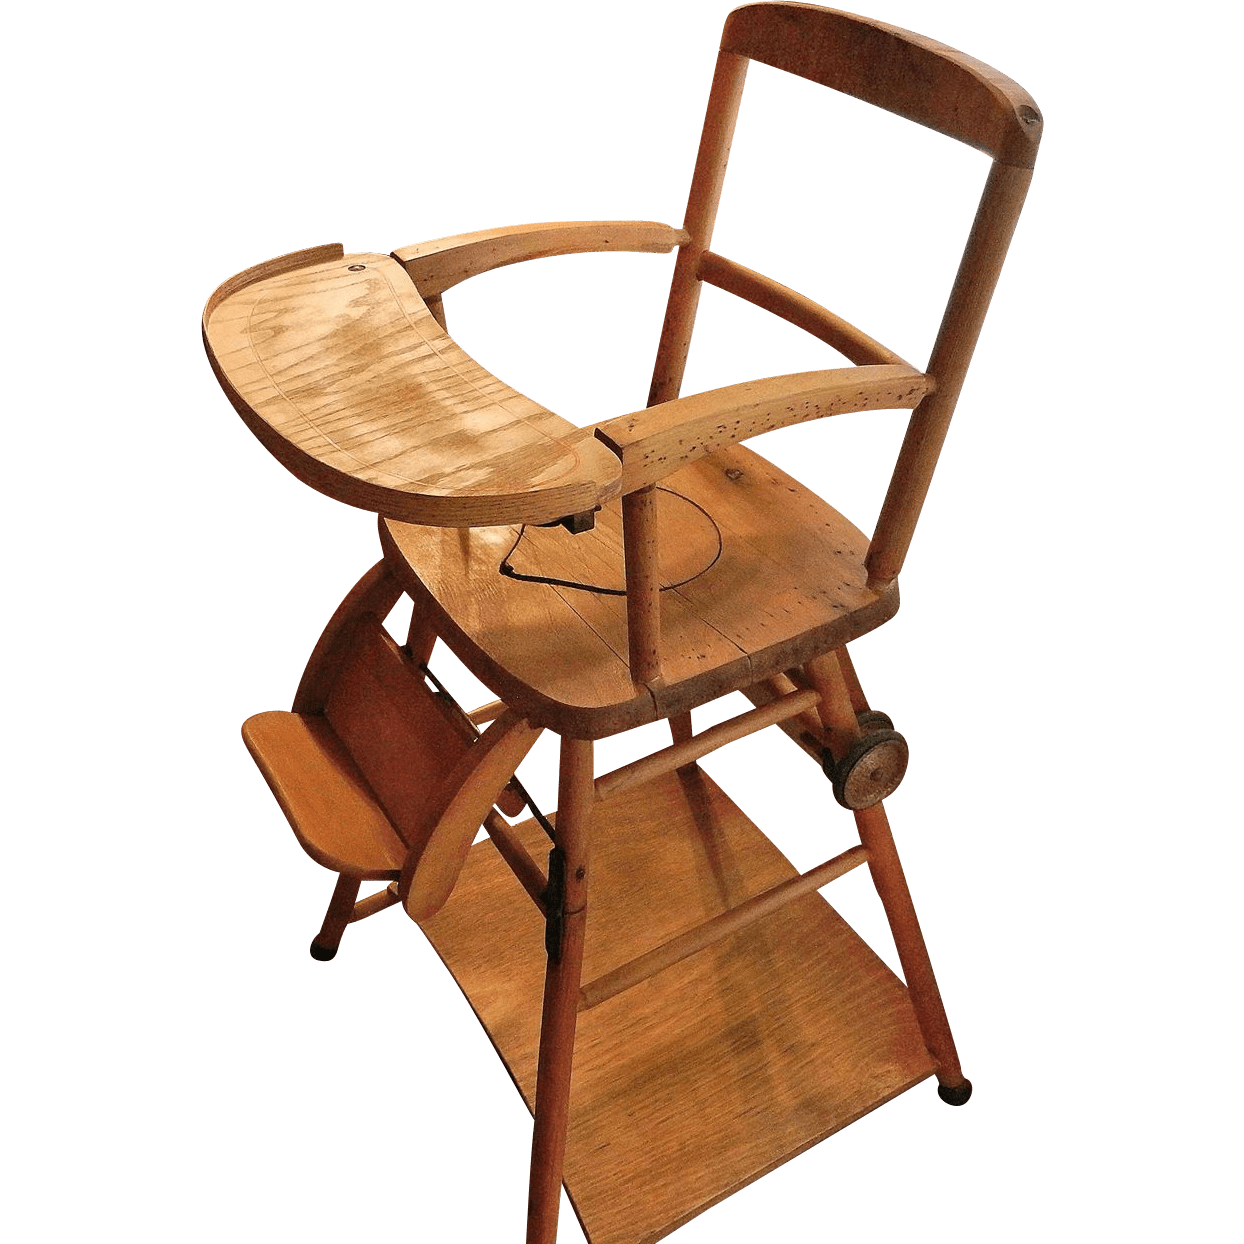 Wooden High Chair Vintage Wooden High Chair Potty Chair And Play Chair In